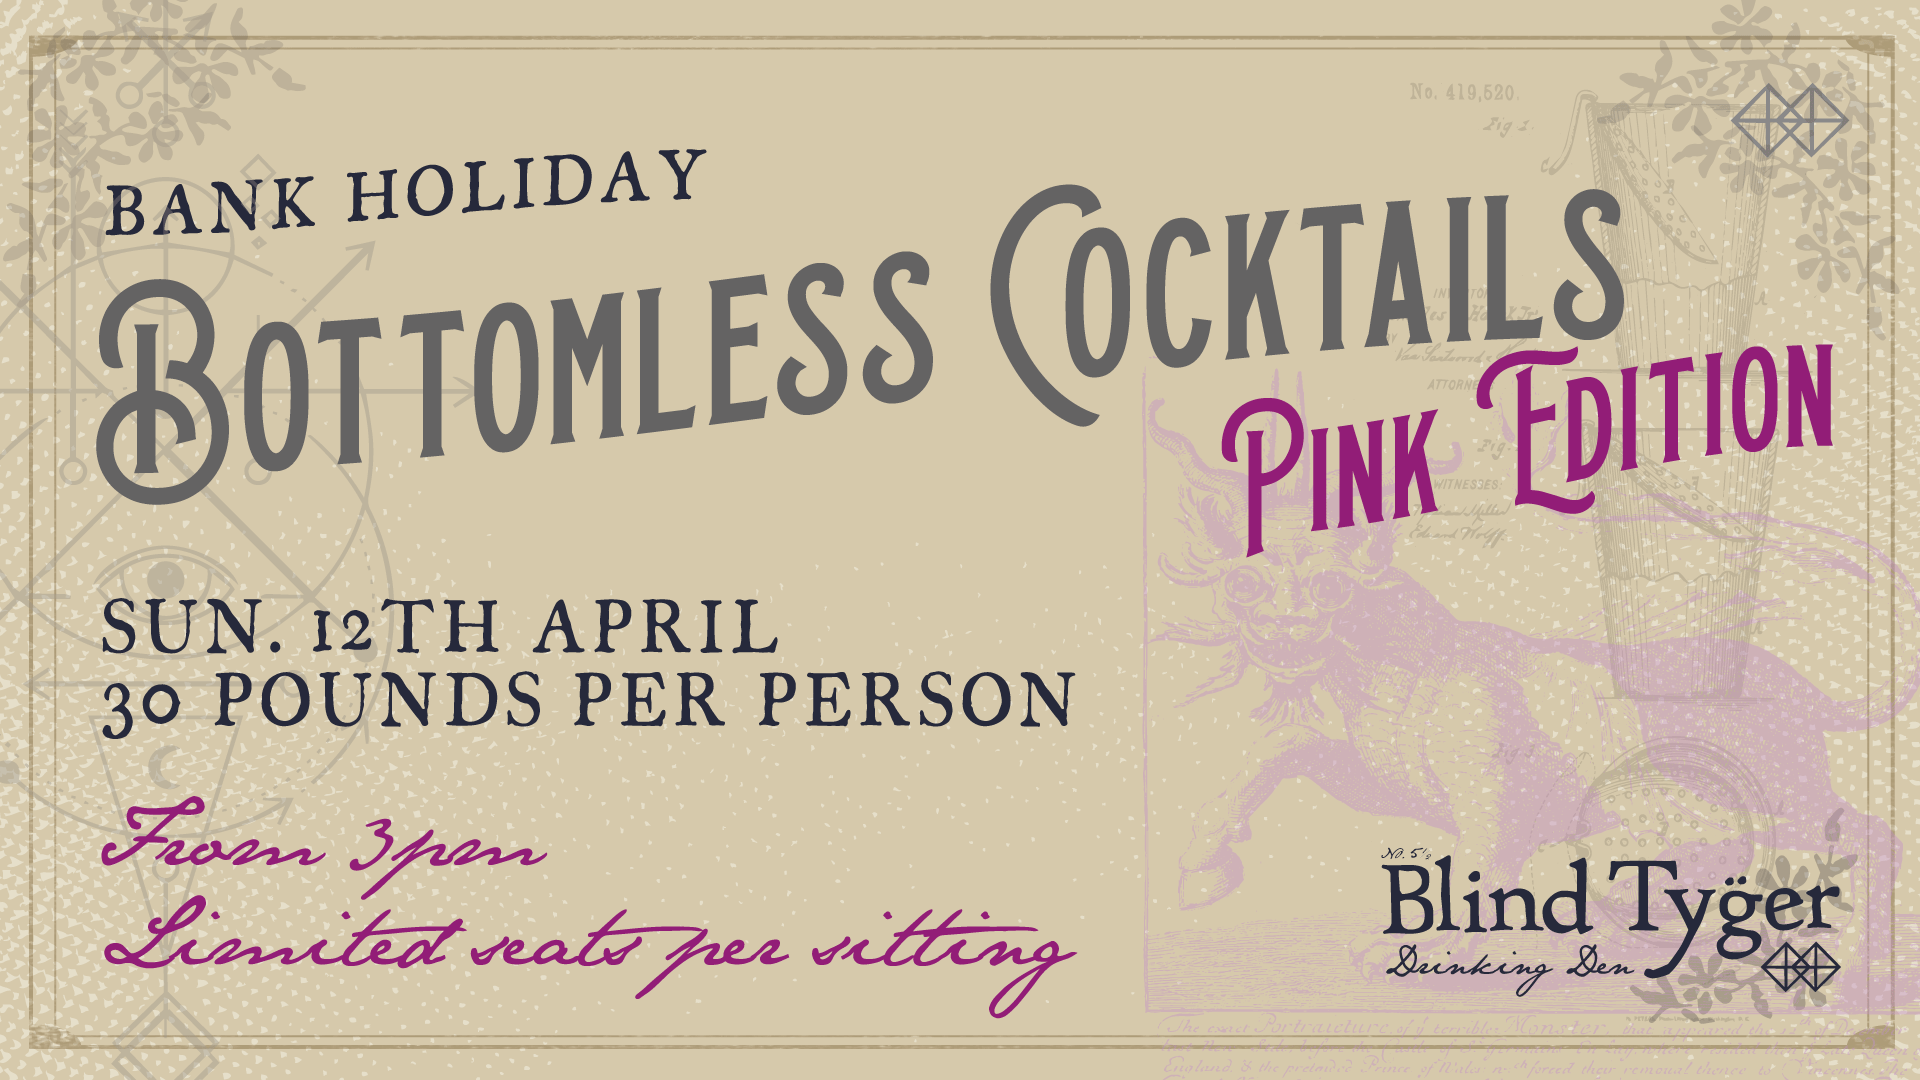 Bottomless Cocktails Pink Edition - Bank Holiday - Leeds